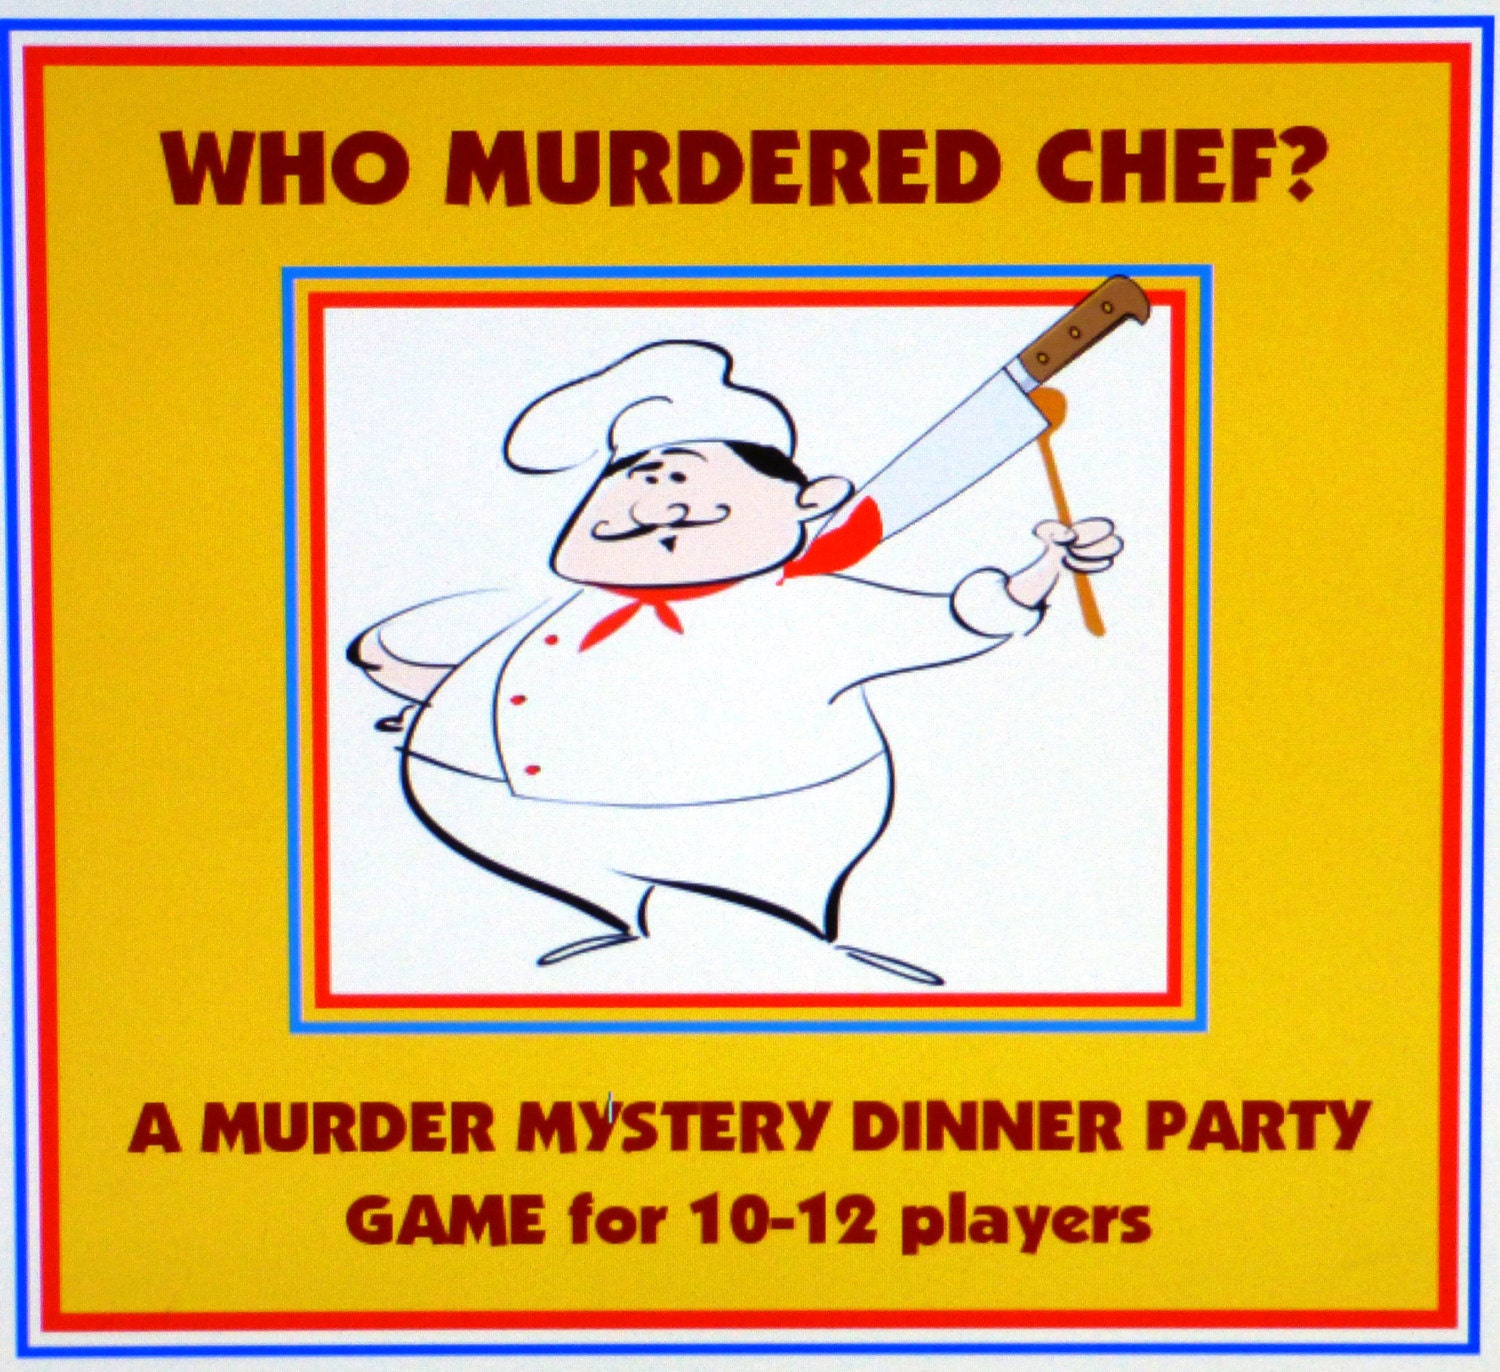 Best Murder Mystery Dinner Free: Host A Murder Mystery Dinner Party Game For 10-12 Players